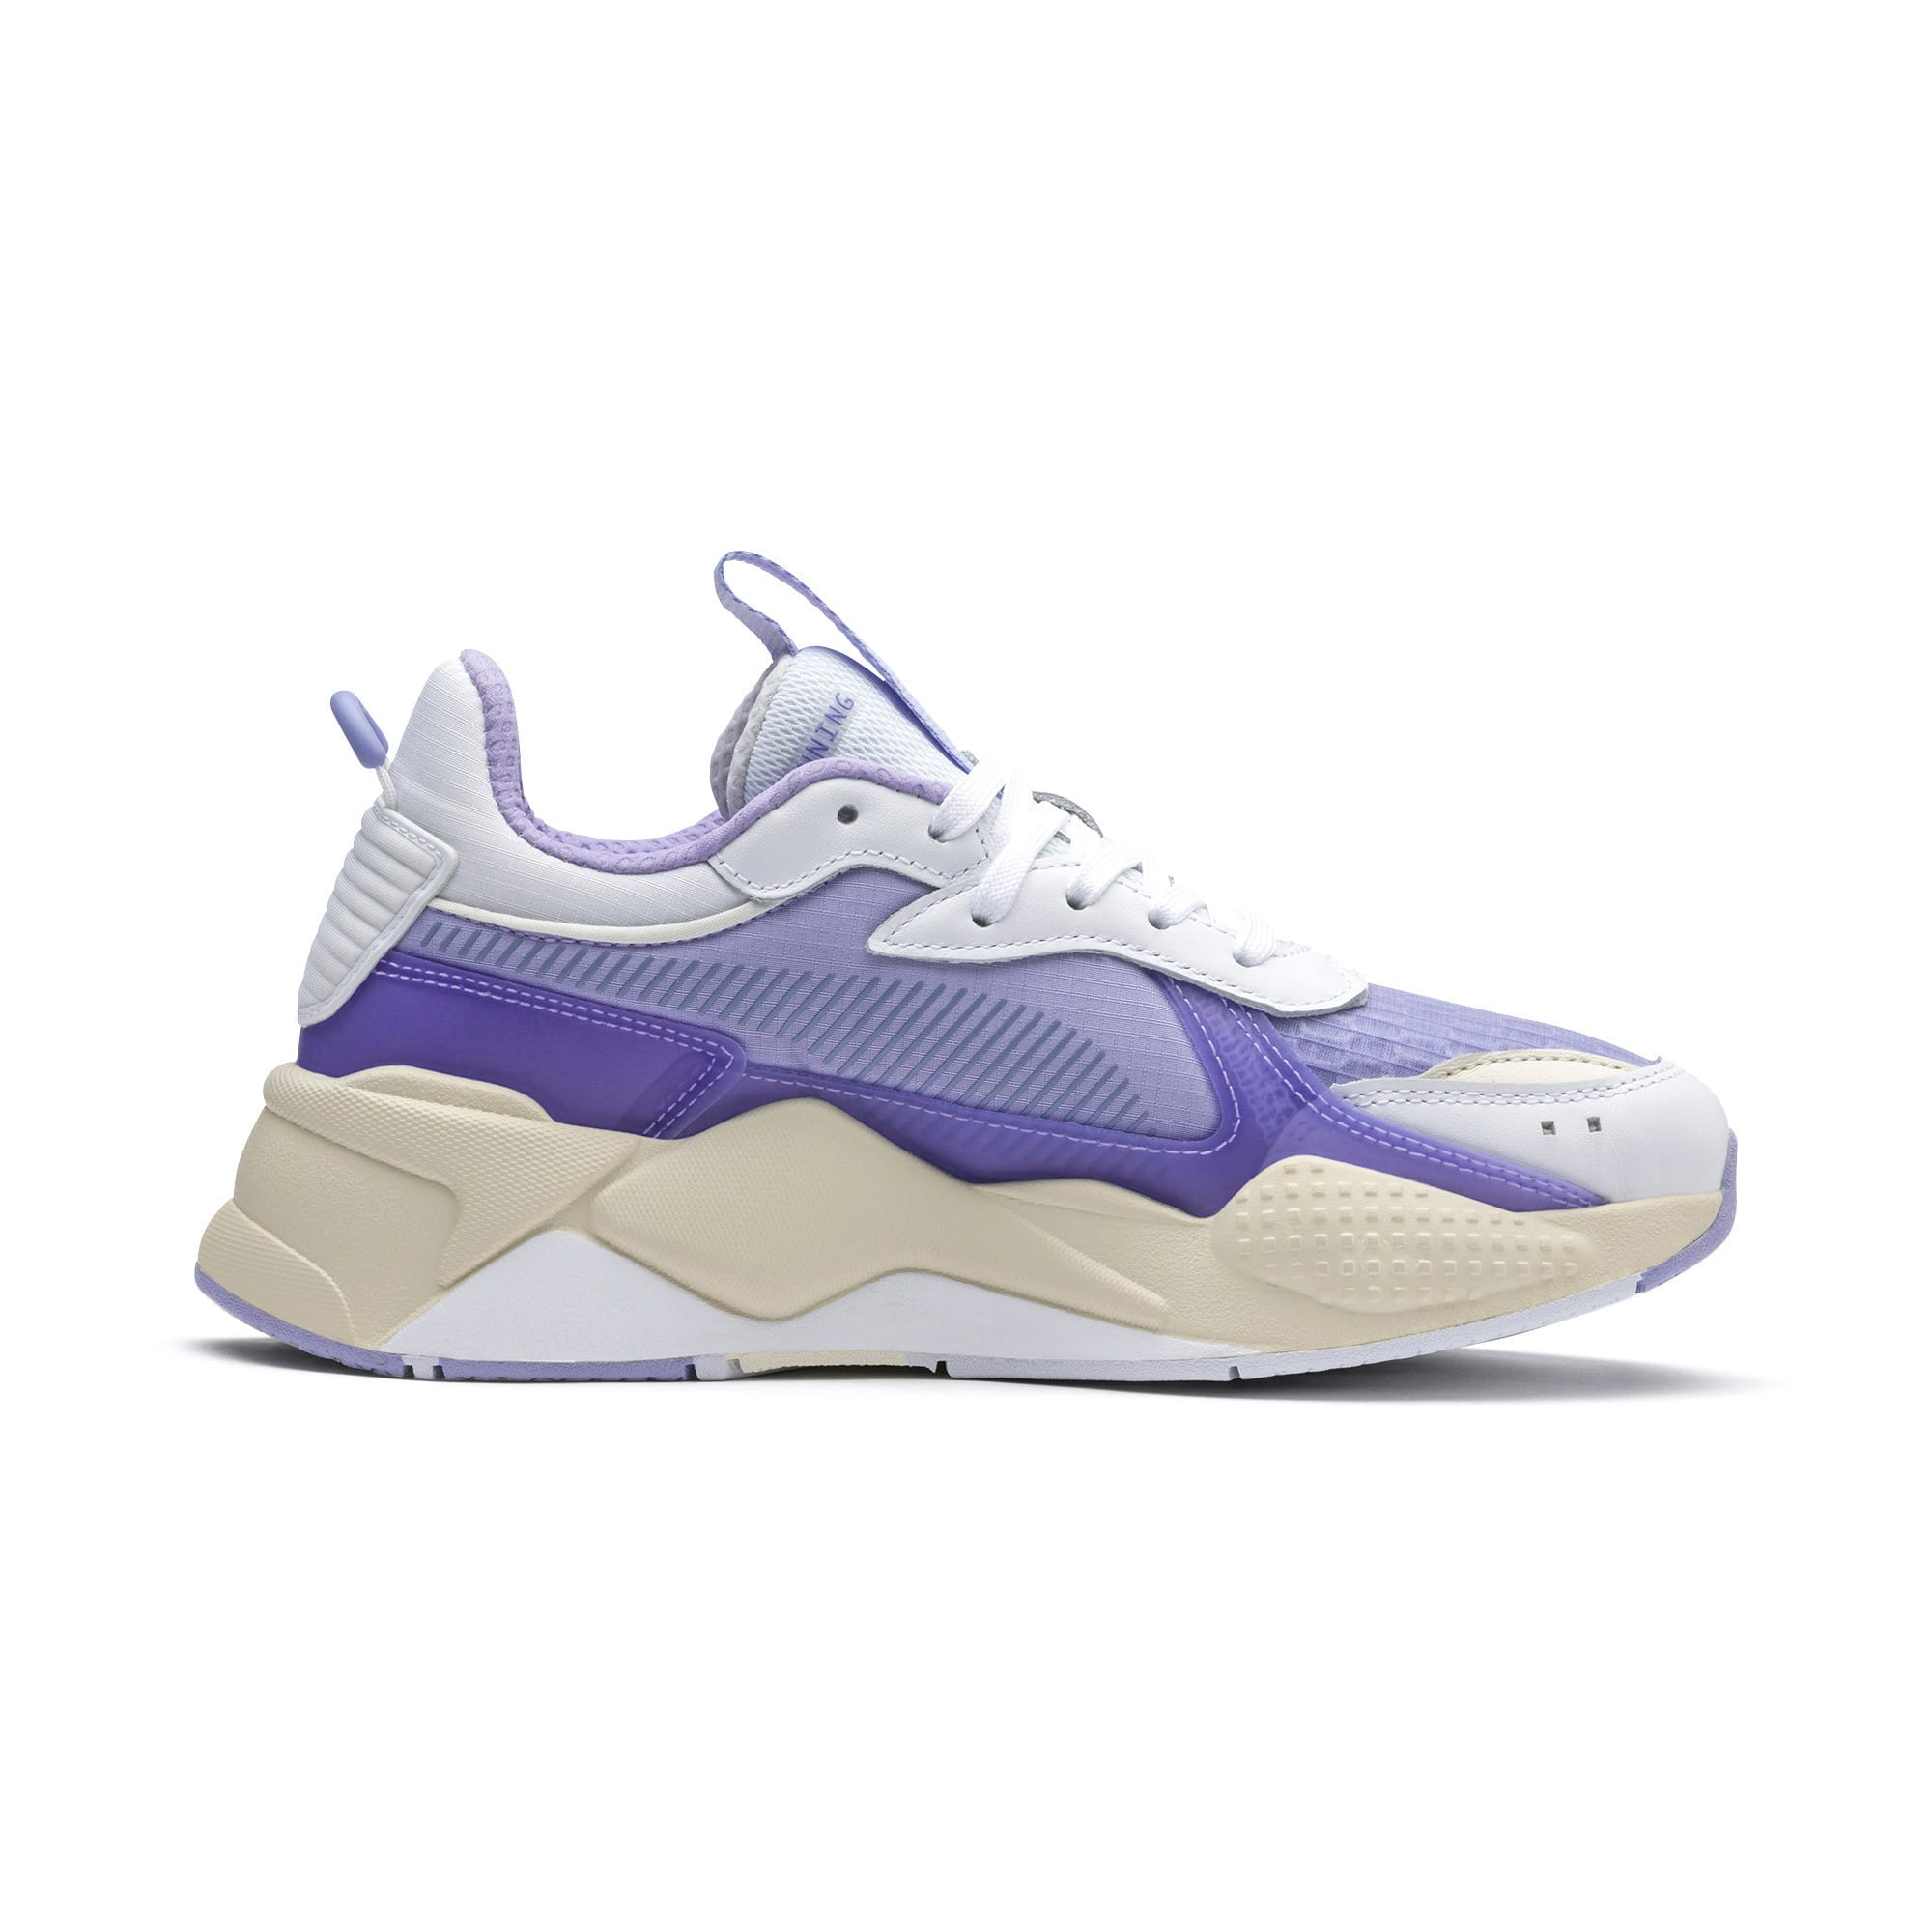 Thumbnail 5 of RS-X TECH Sneakers, Puma White-Sweet Lavender, medium